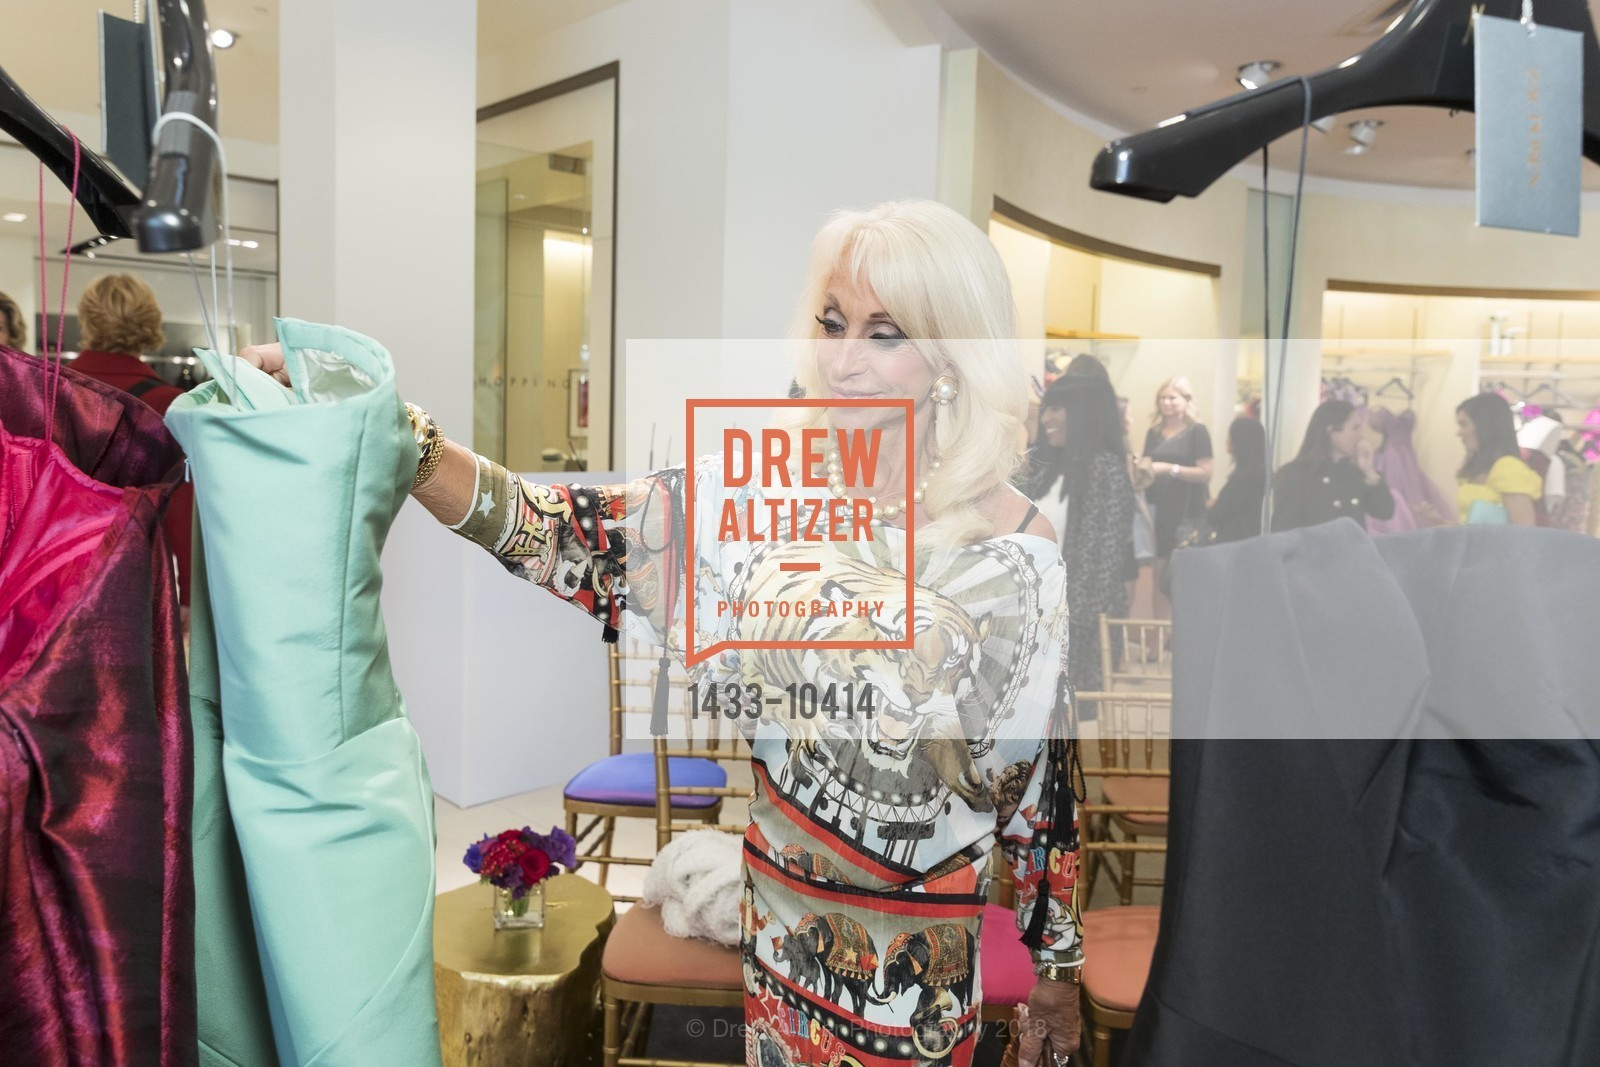 Daru Kawalkowski, Neiman Marcus Hosts Zac Posen and Ken Downing Personal Appearance and Fashion Show, Neiman Marcus, 3rd Floor. 150 Stockton Street, April 12th, 2018,Drew Altizer, Drew Altizer Photography, full-service agency, private events, San Francisco photographer, photographer california